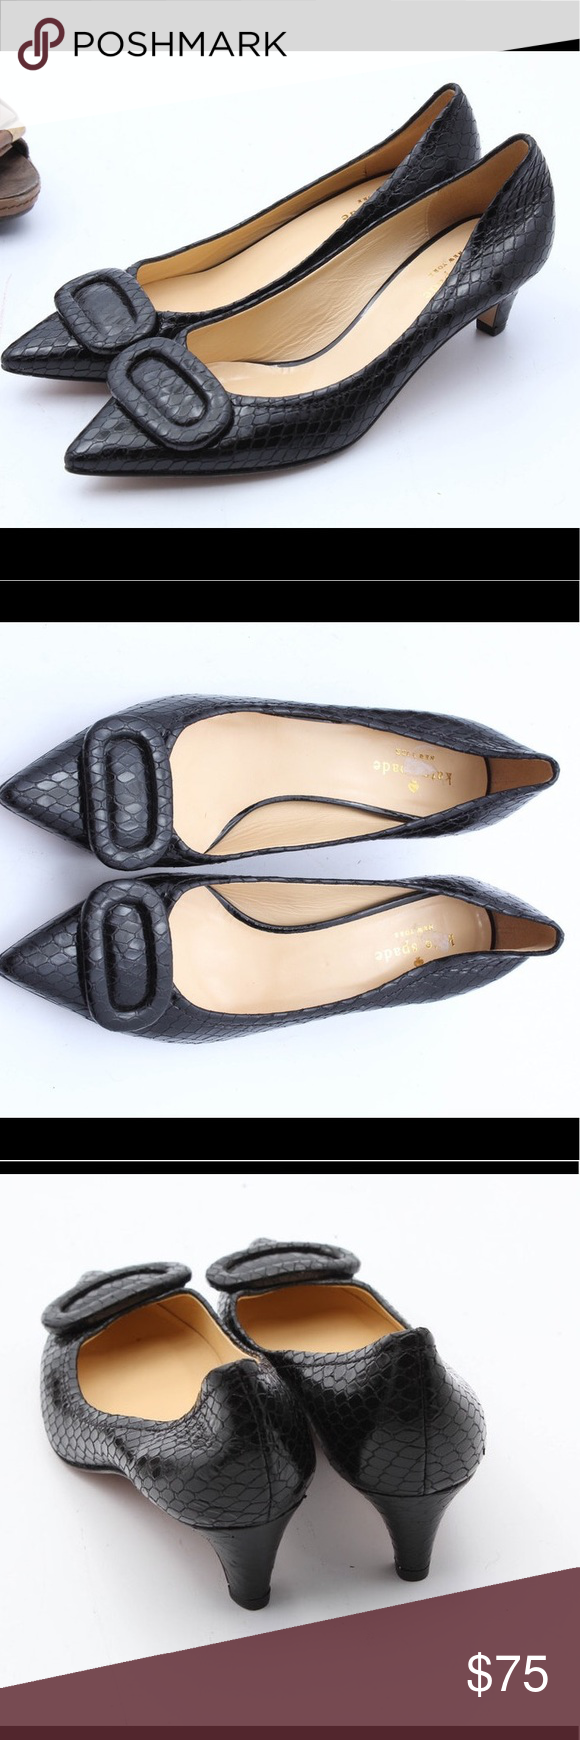 Kate Spade Black Kitten Heeled Pumps 7 Black Kitten Heels Kitten Heel Pumps Pumps Heels